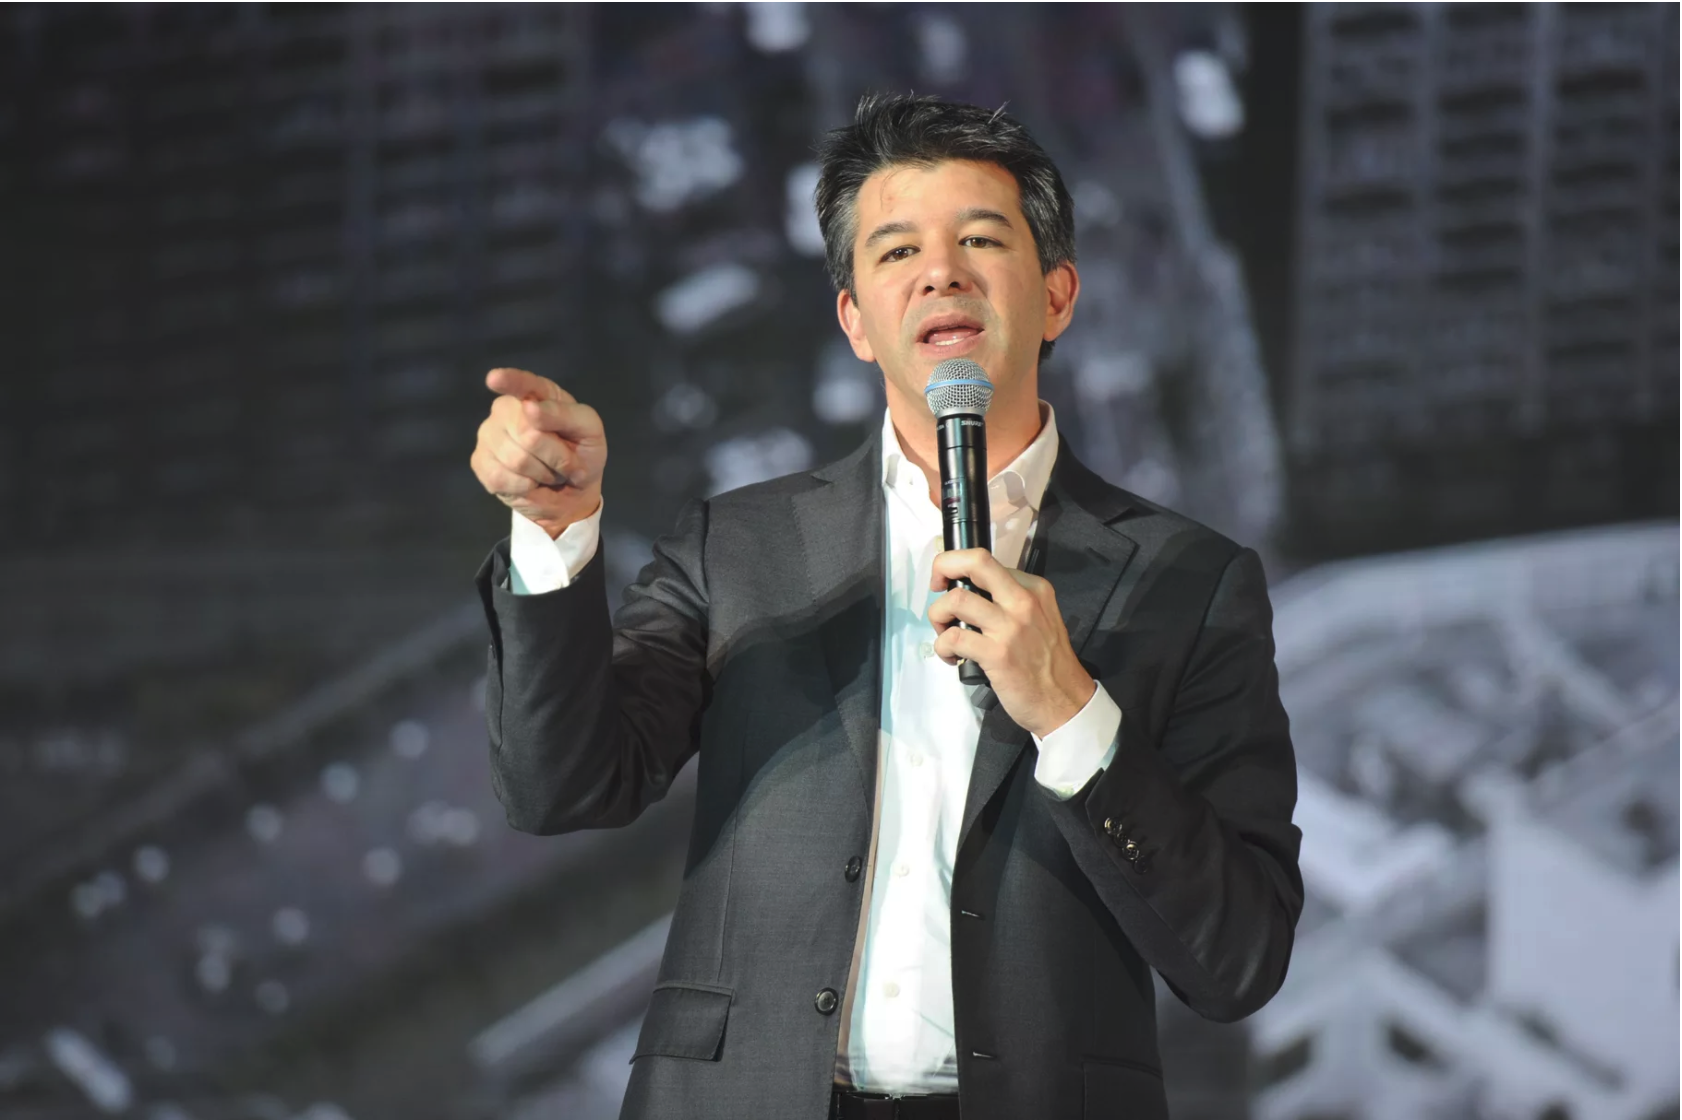 Benchmark is suing Travis Kalanick (and Uber) over board control, claiming a 'selfish' power grab